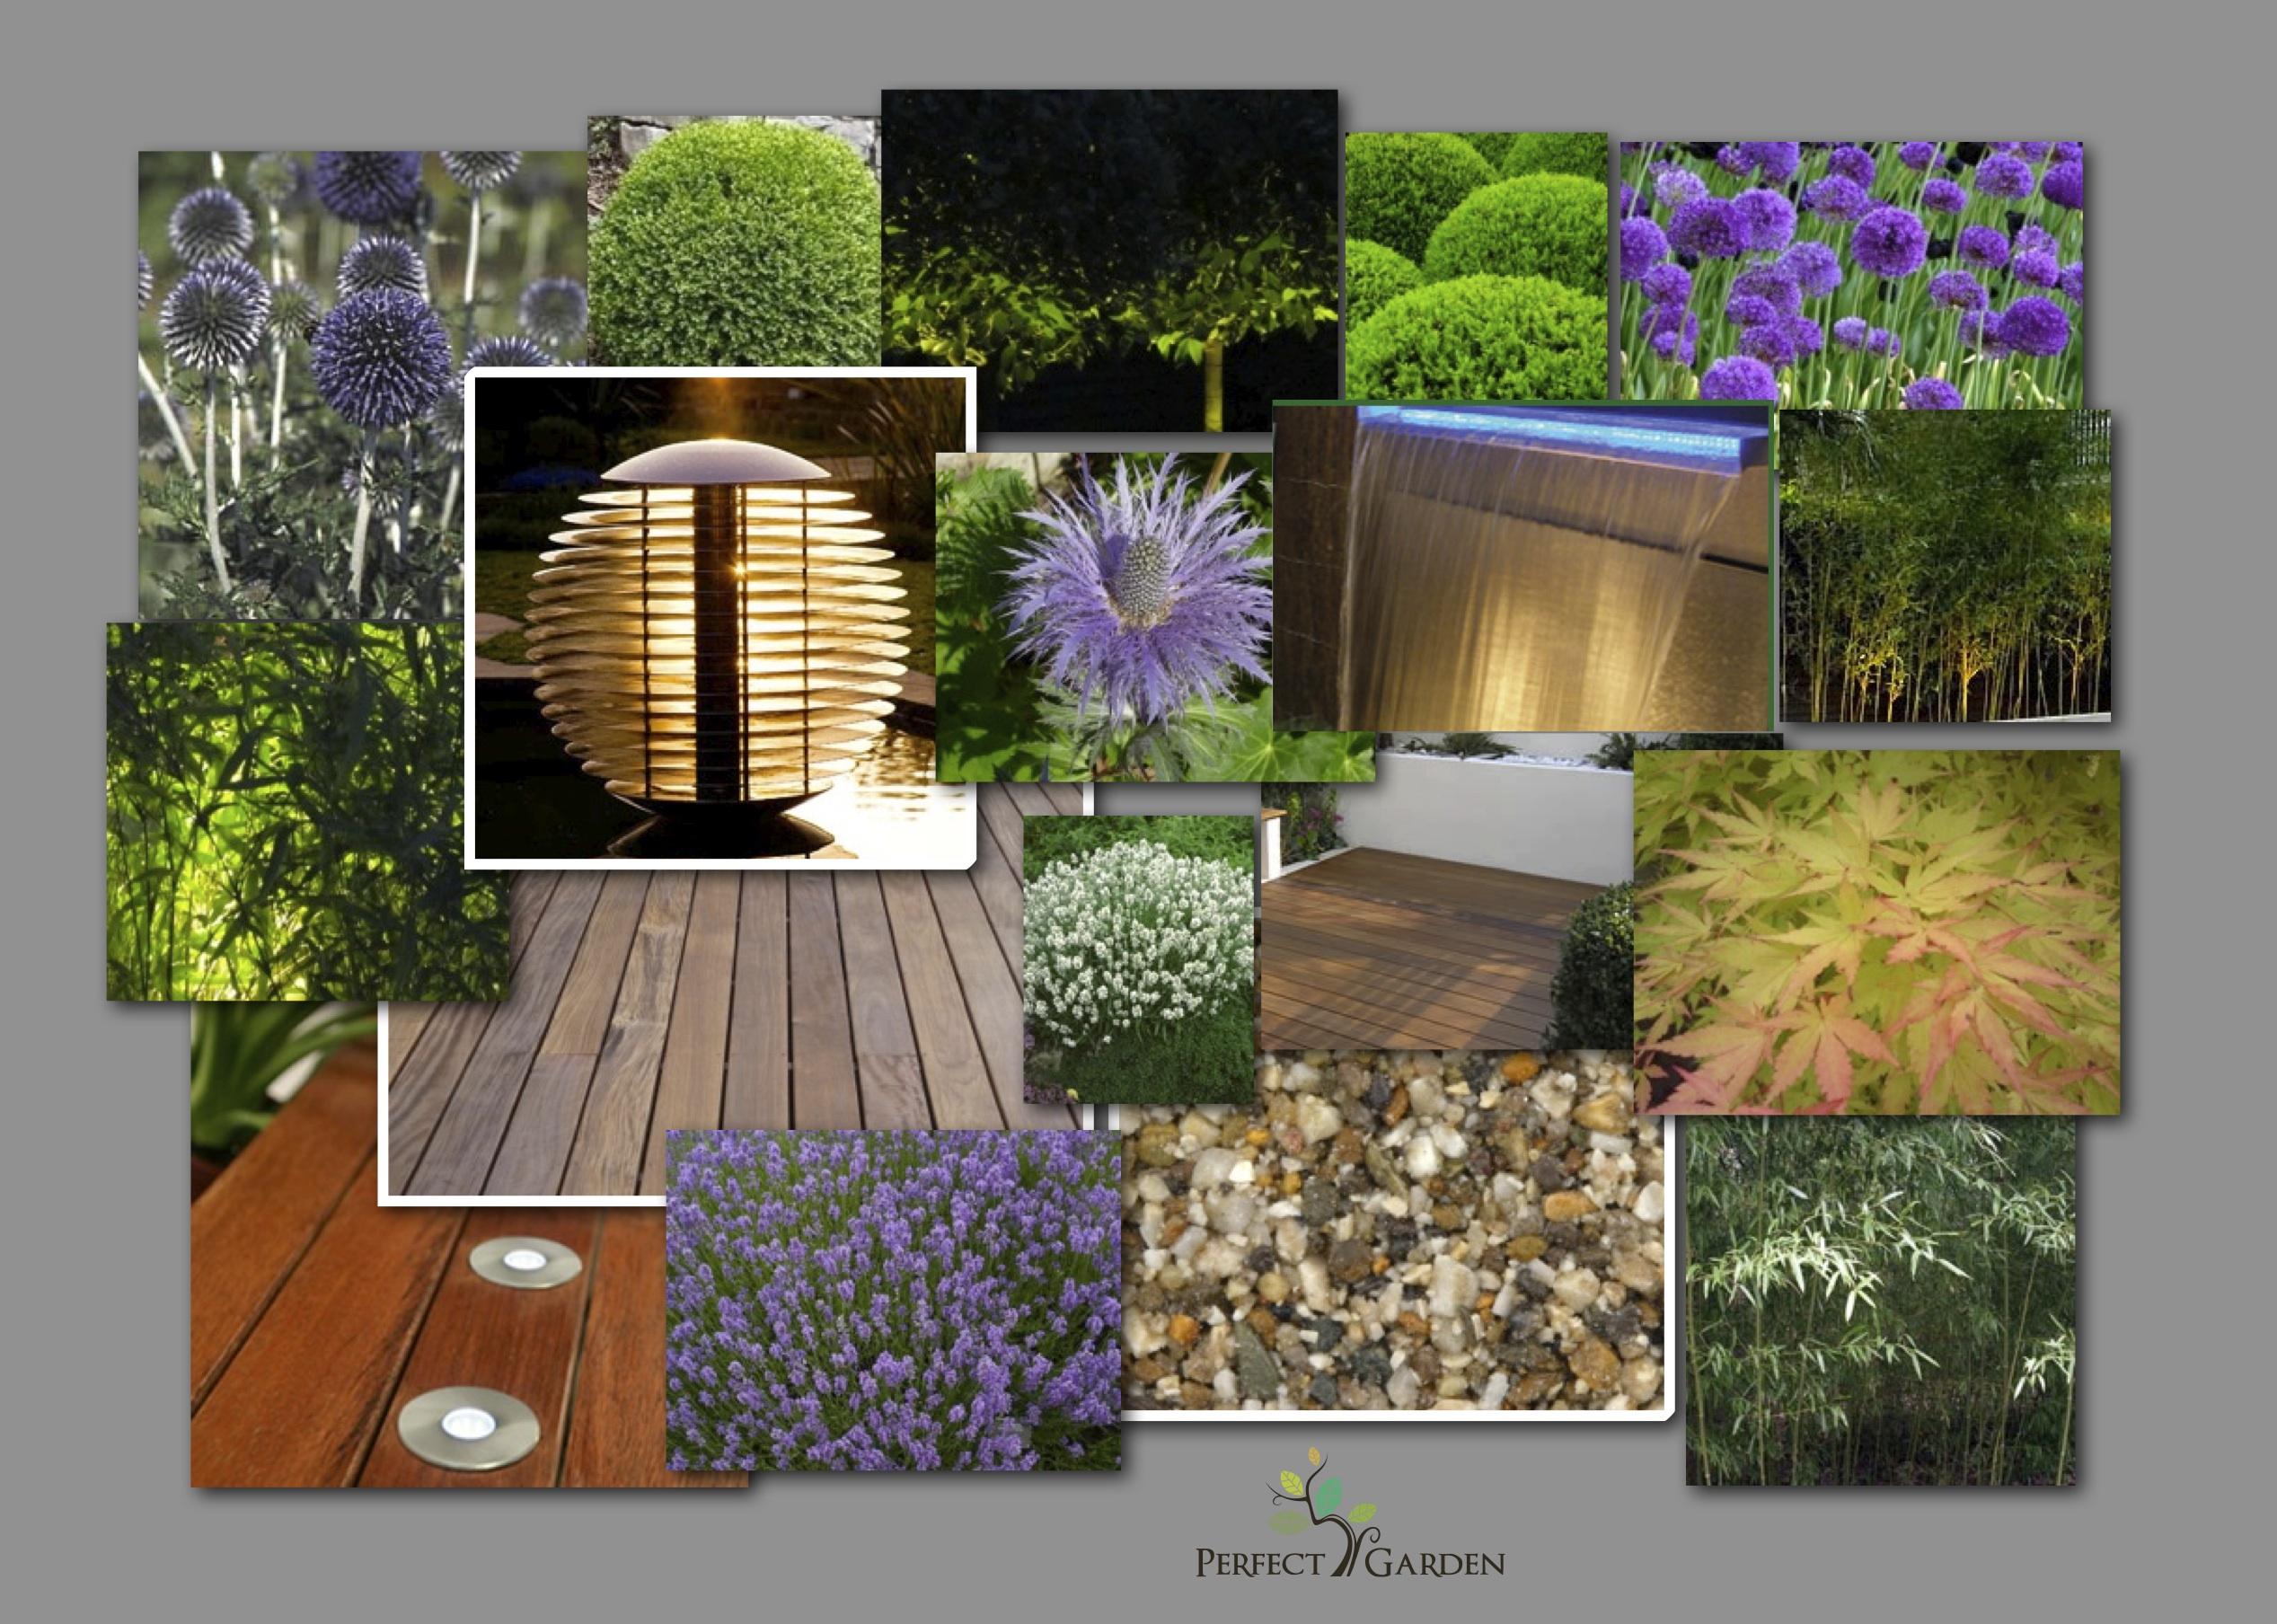 Perfect garden concept board perfect garden for Perfect garden layout